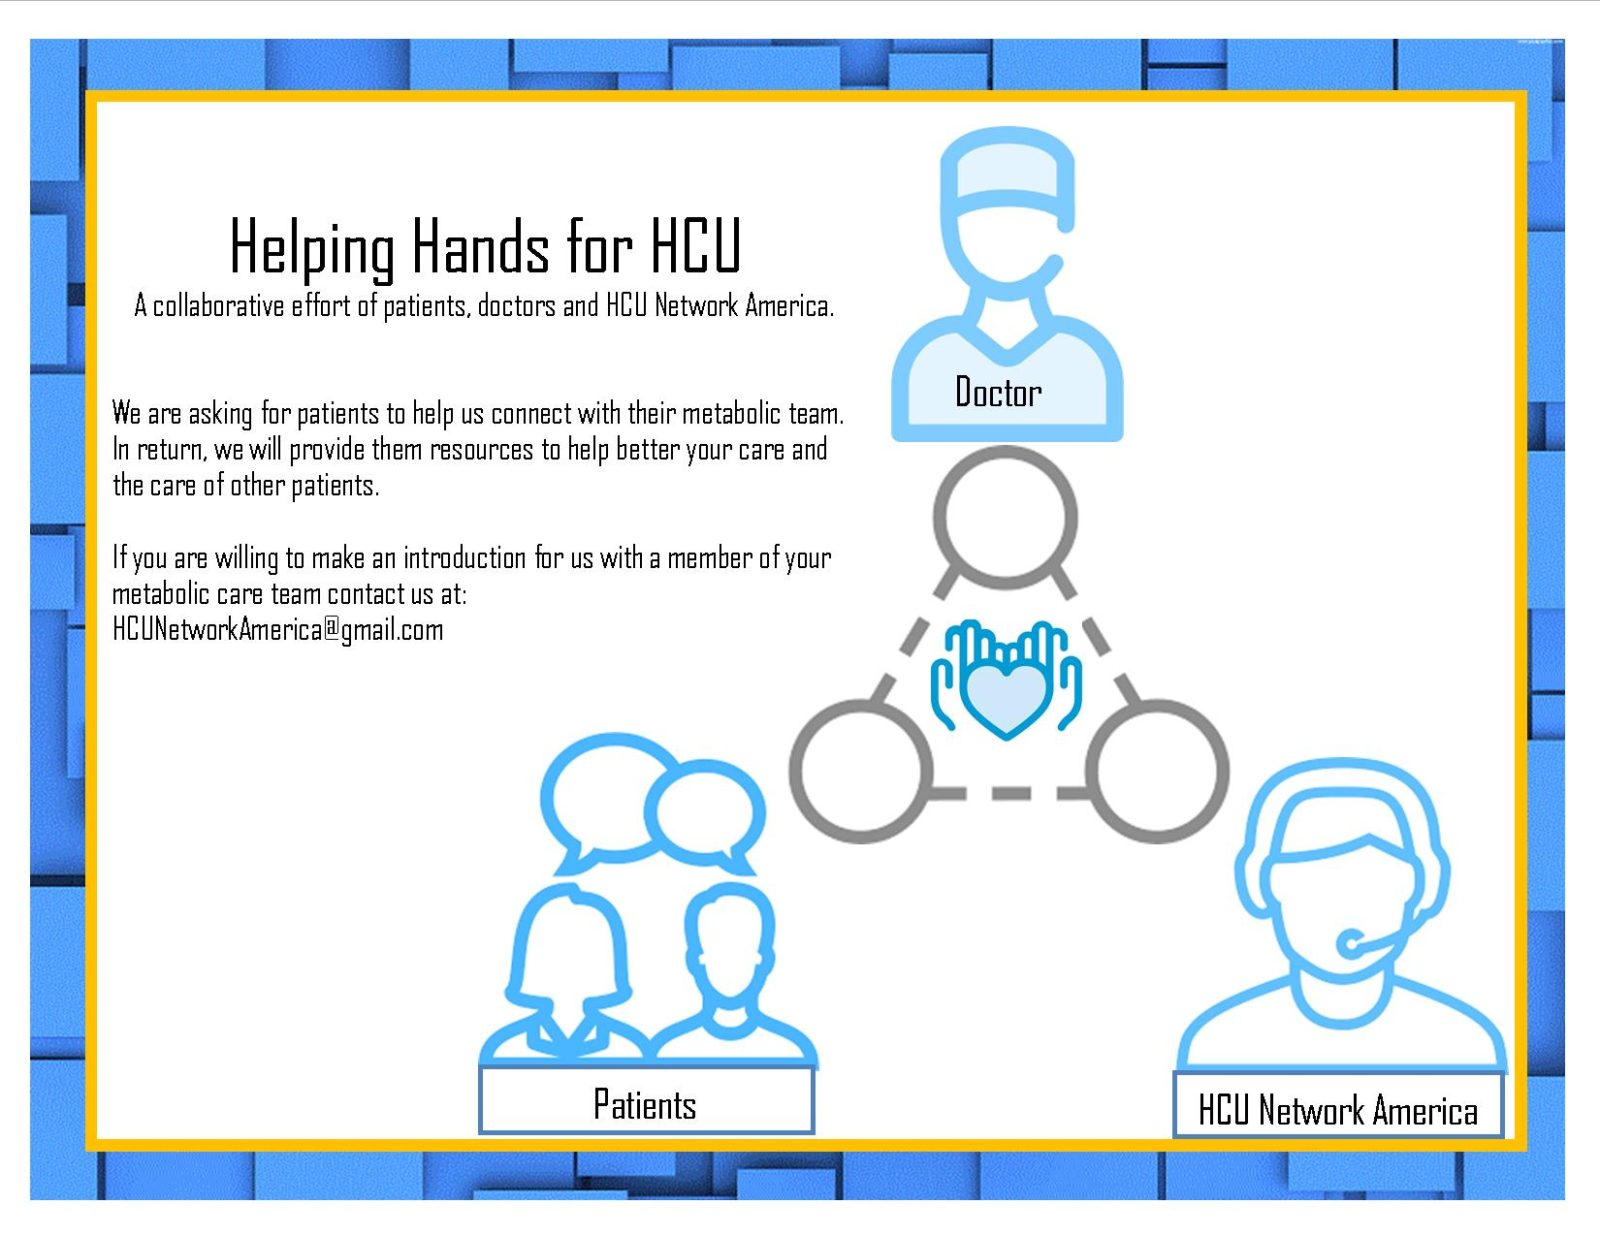 Helping hands for HCU